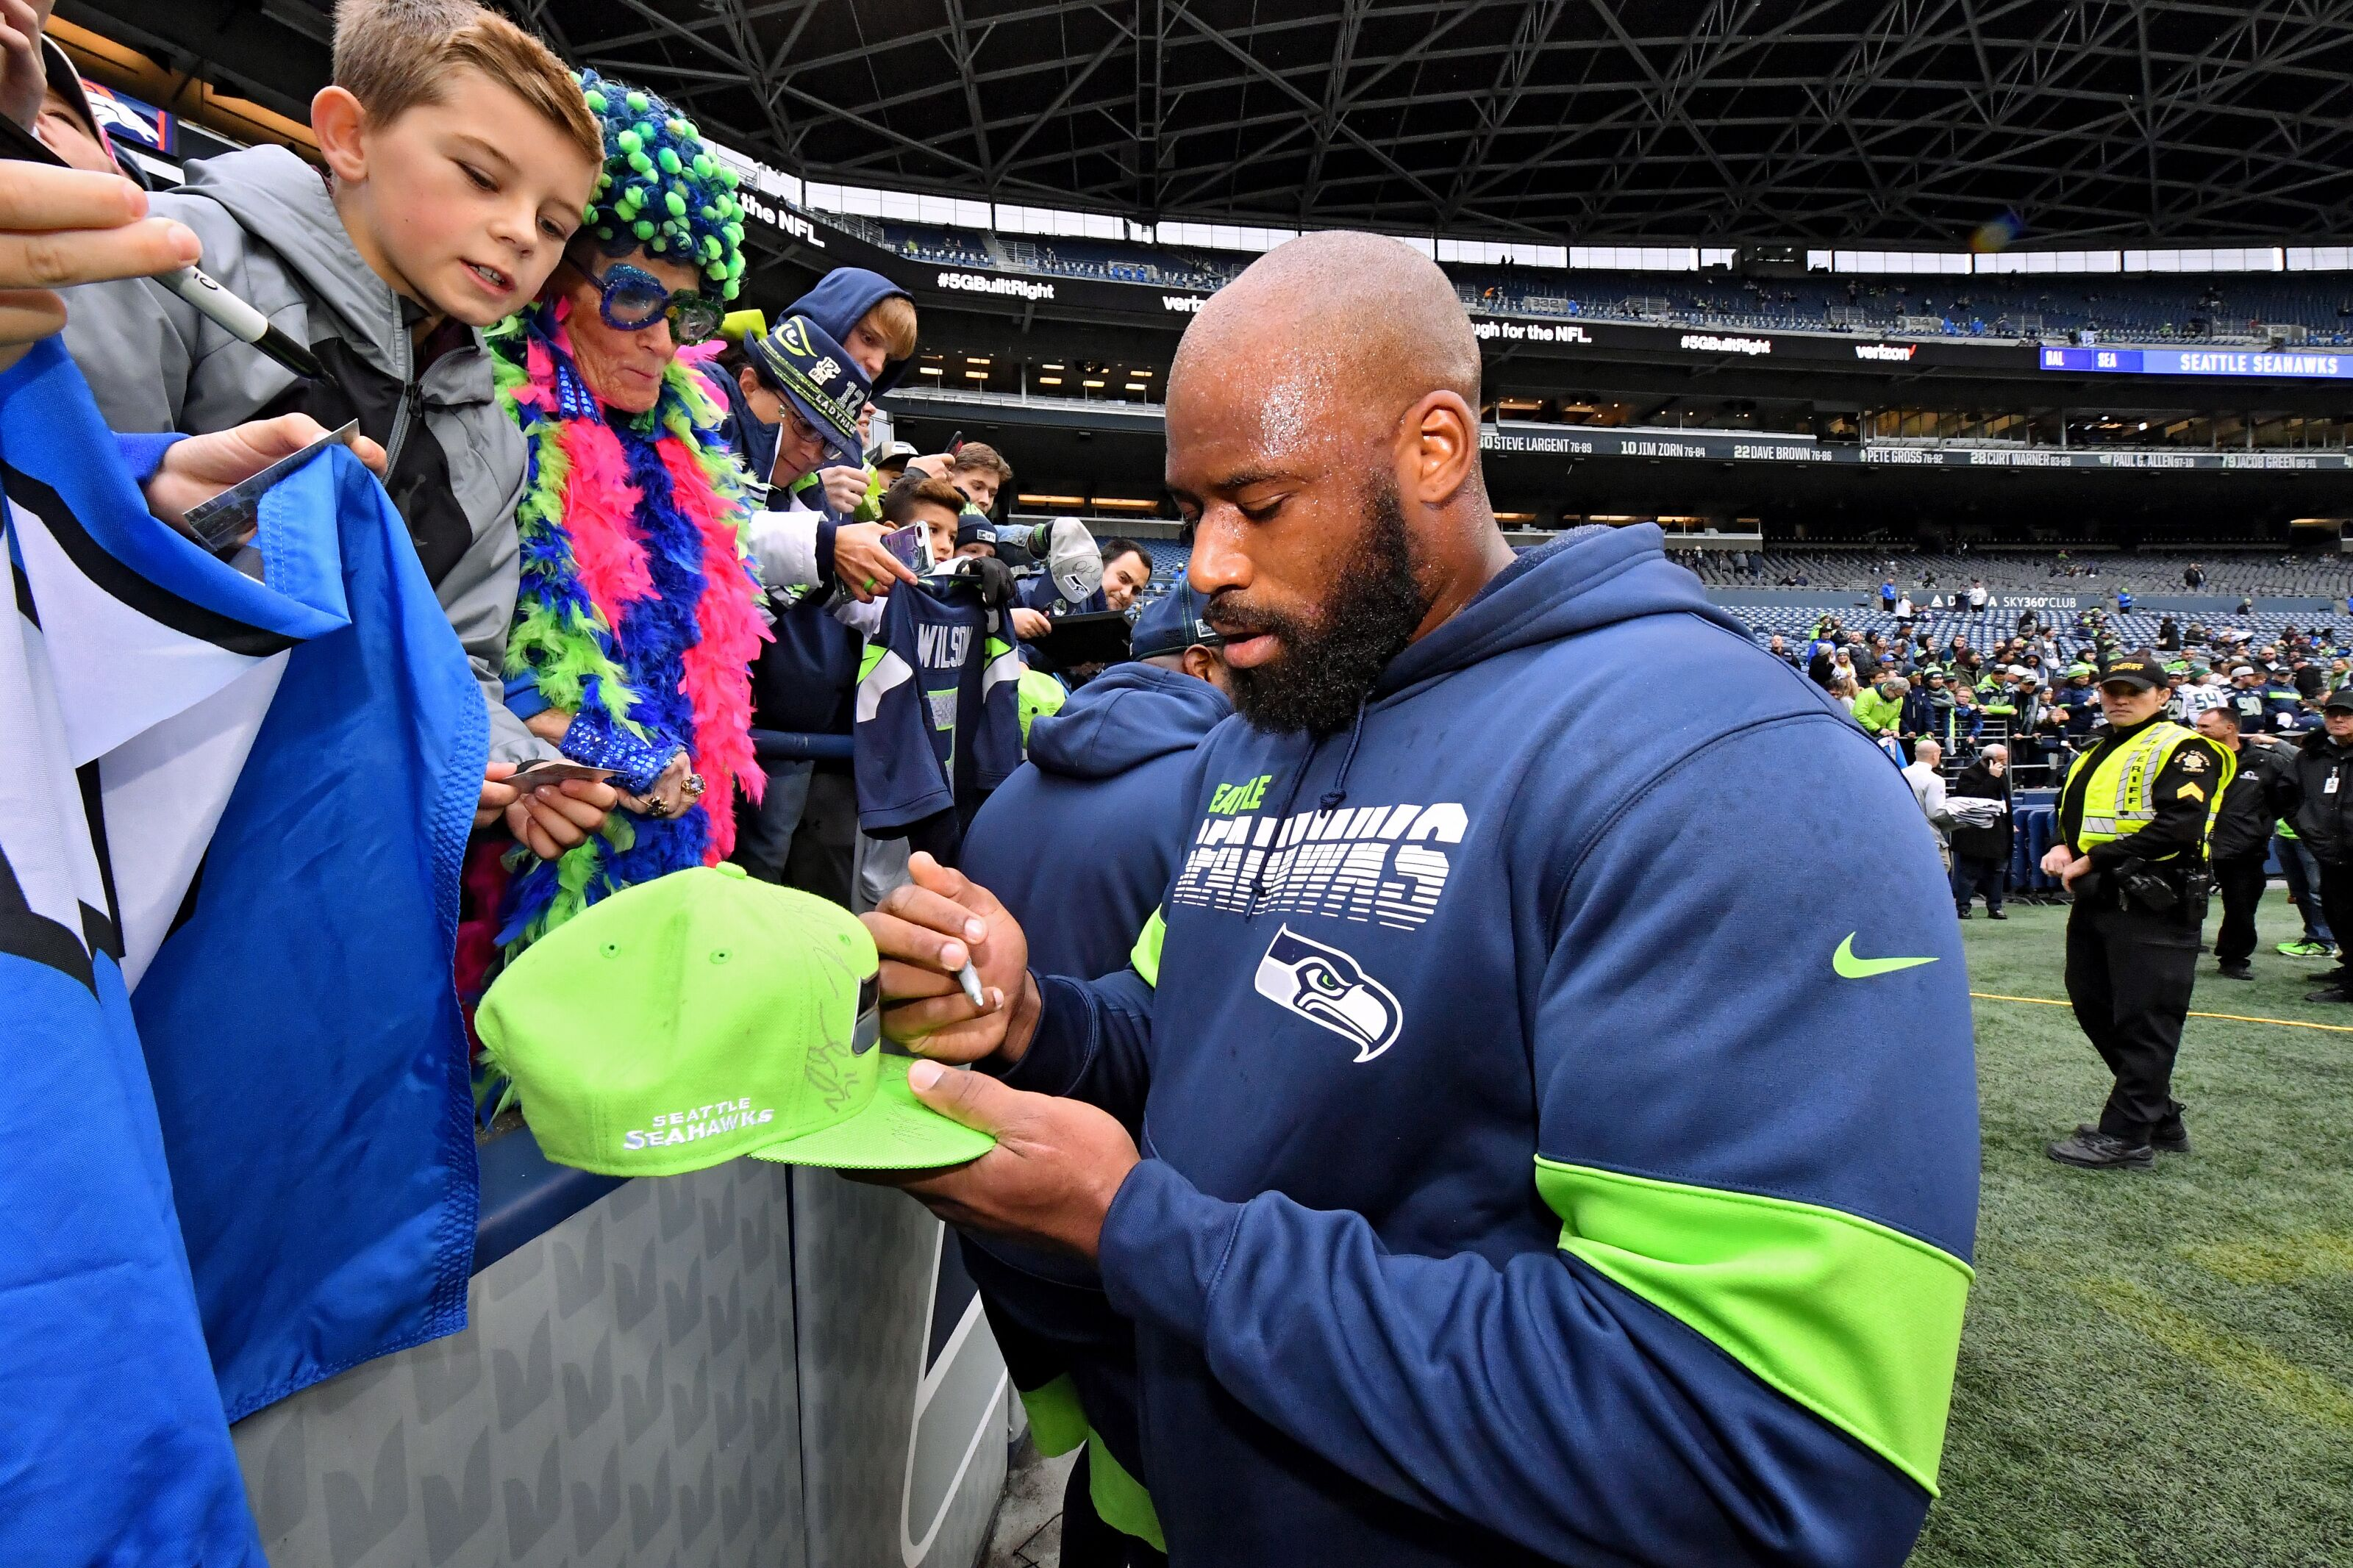 Seahawks MVP for game 12: the unsung hero George Fant